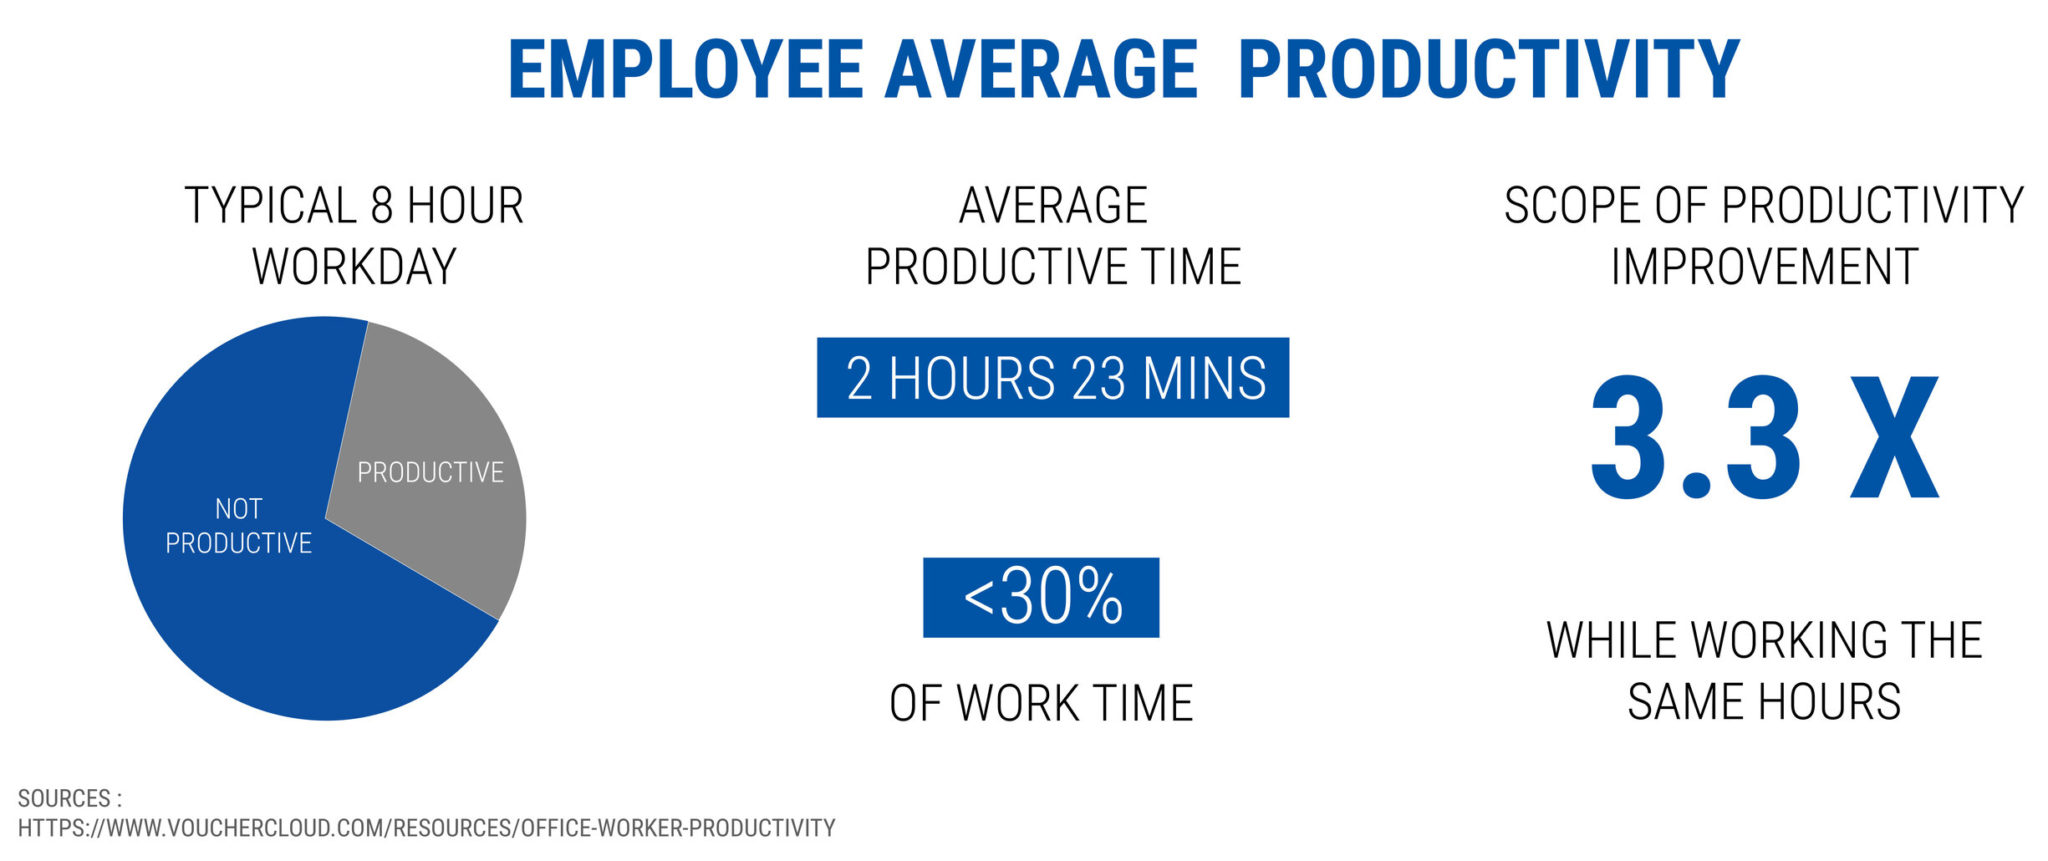 employee average productivity - starting a coaching business while working full-time